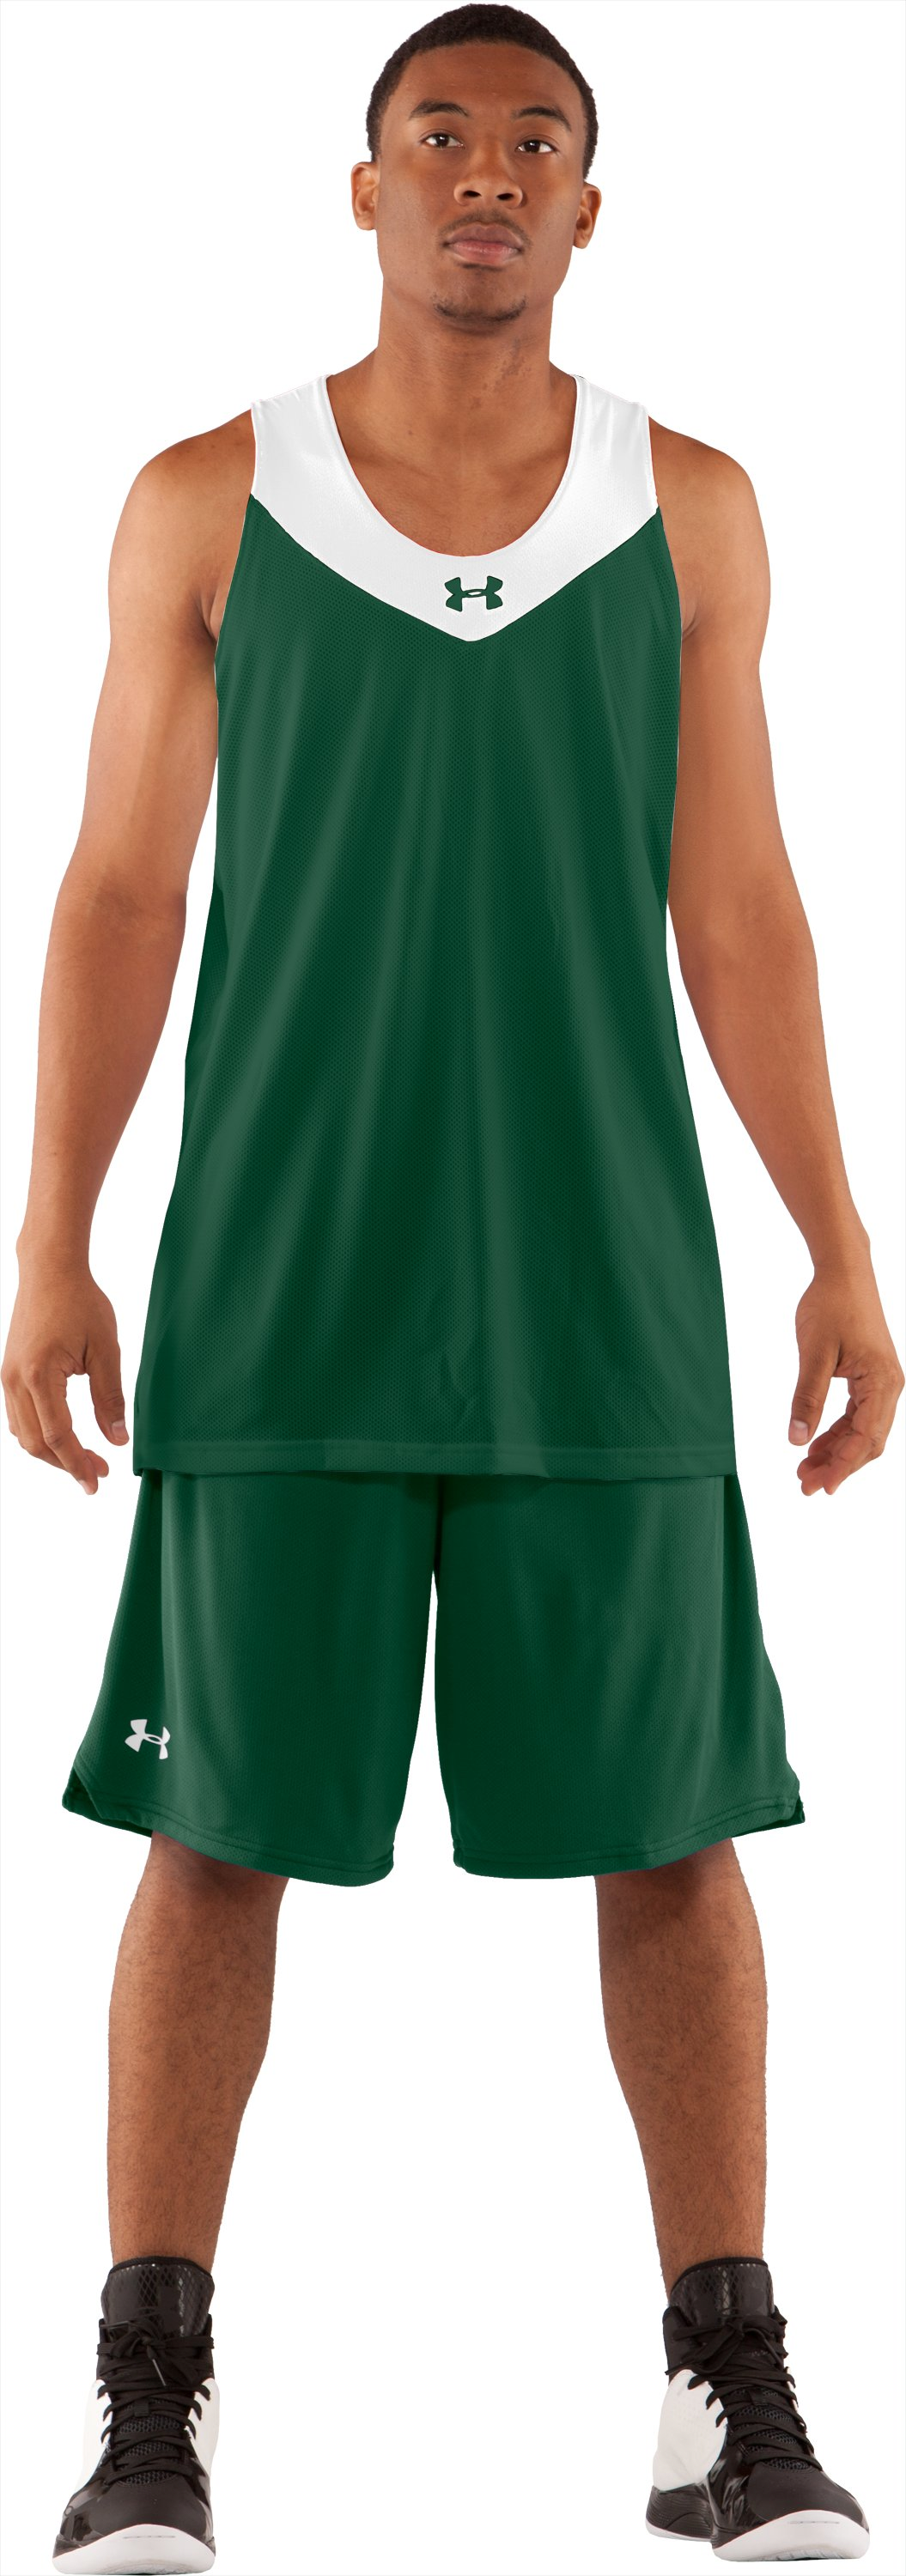 Men's Repeat Reversible Basketball Jersey, Forest Green, Front